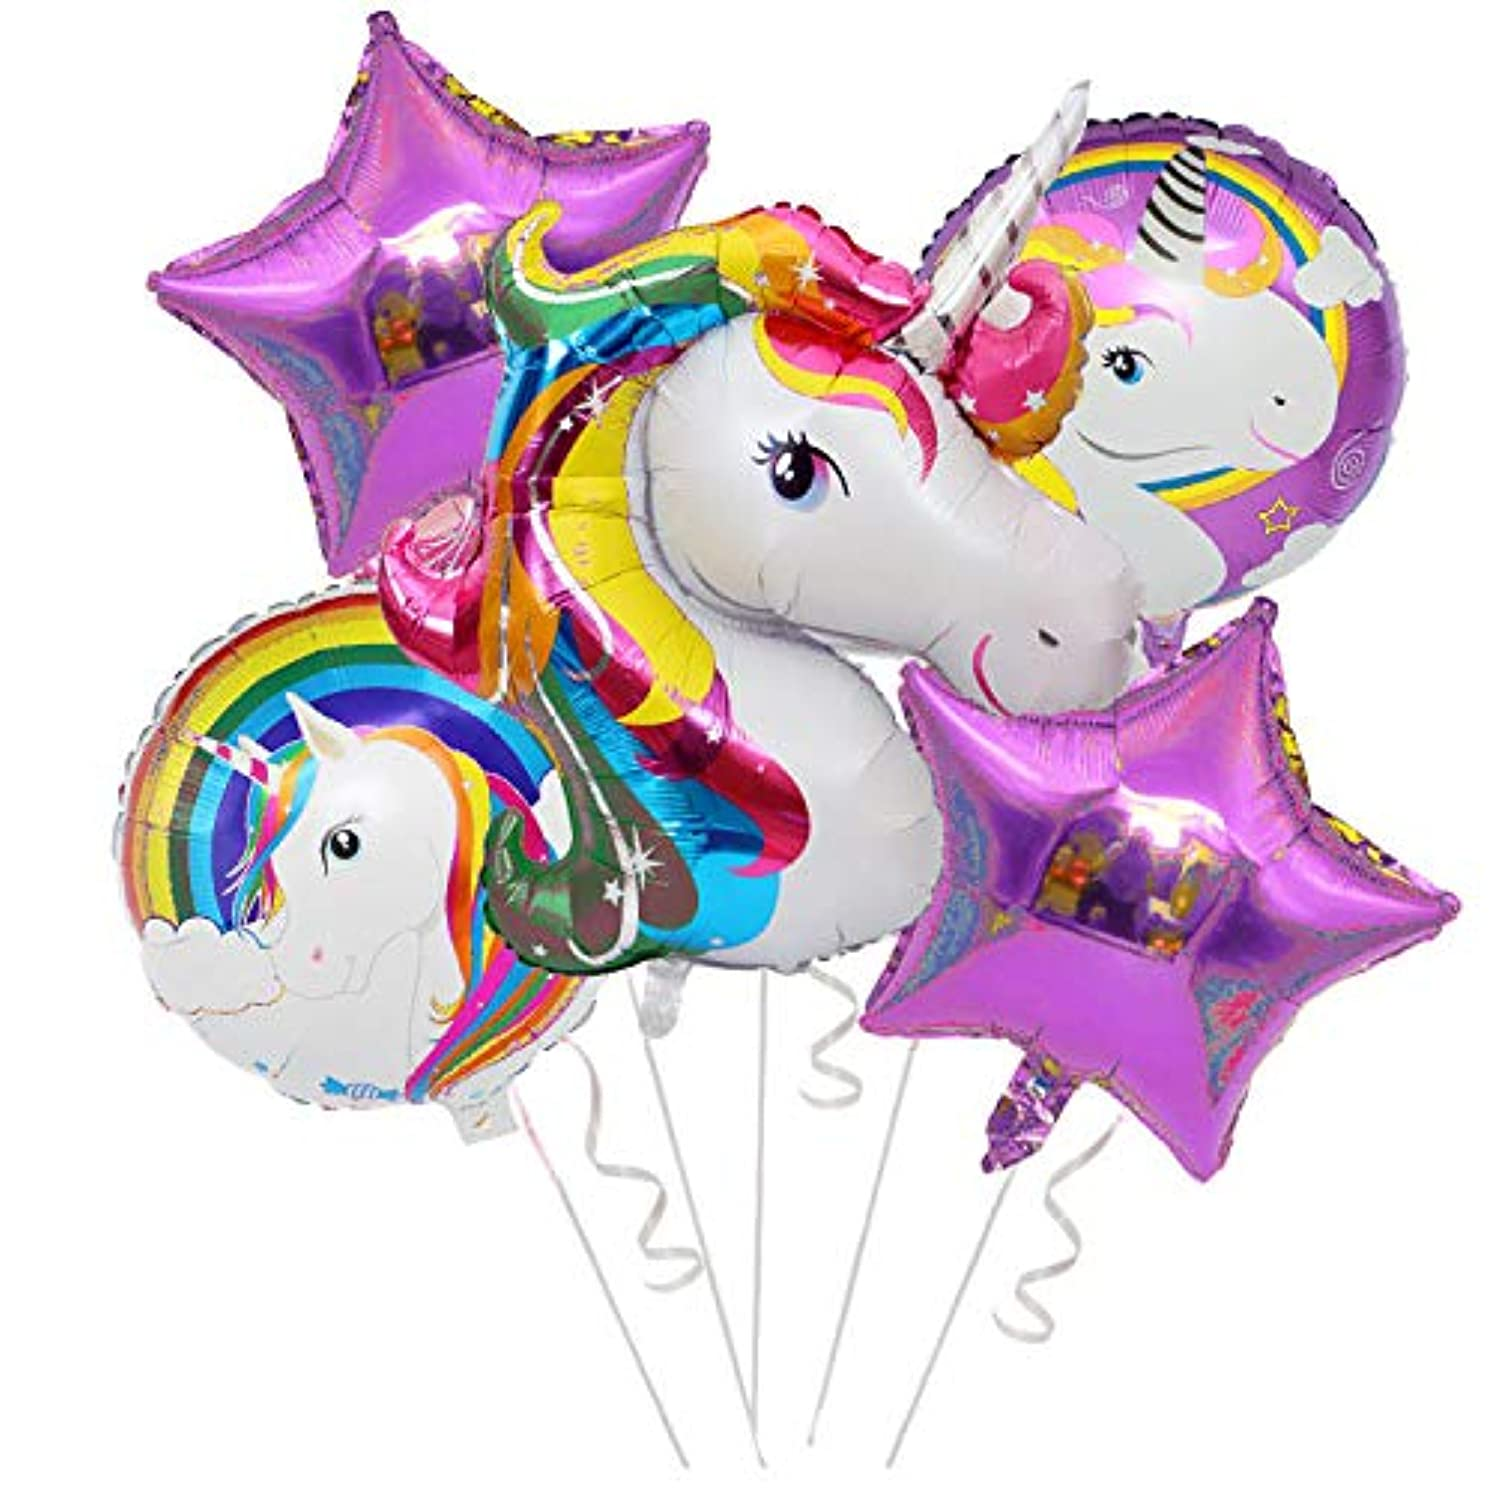 LBH Magical Unicorn Bouquet of Balloons,Unicorn Party Decorations Party Supplies-Colorful Balloons Unicorn Theme Party Pack - 1 Big Unicorn, 2 Stars, and Round Unicorn Balloons … (Multicolor)